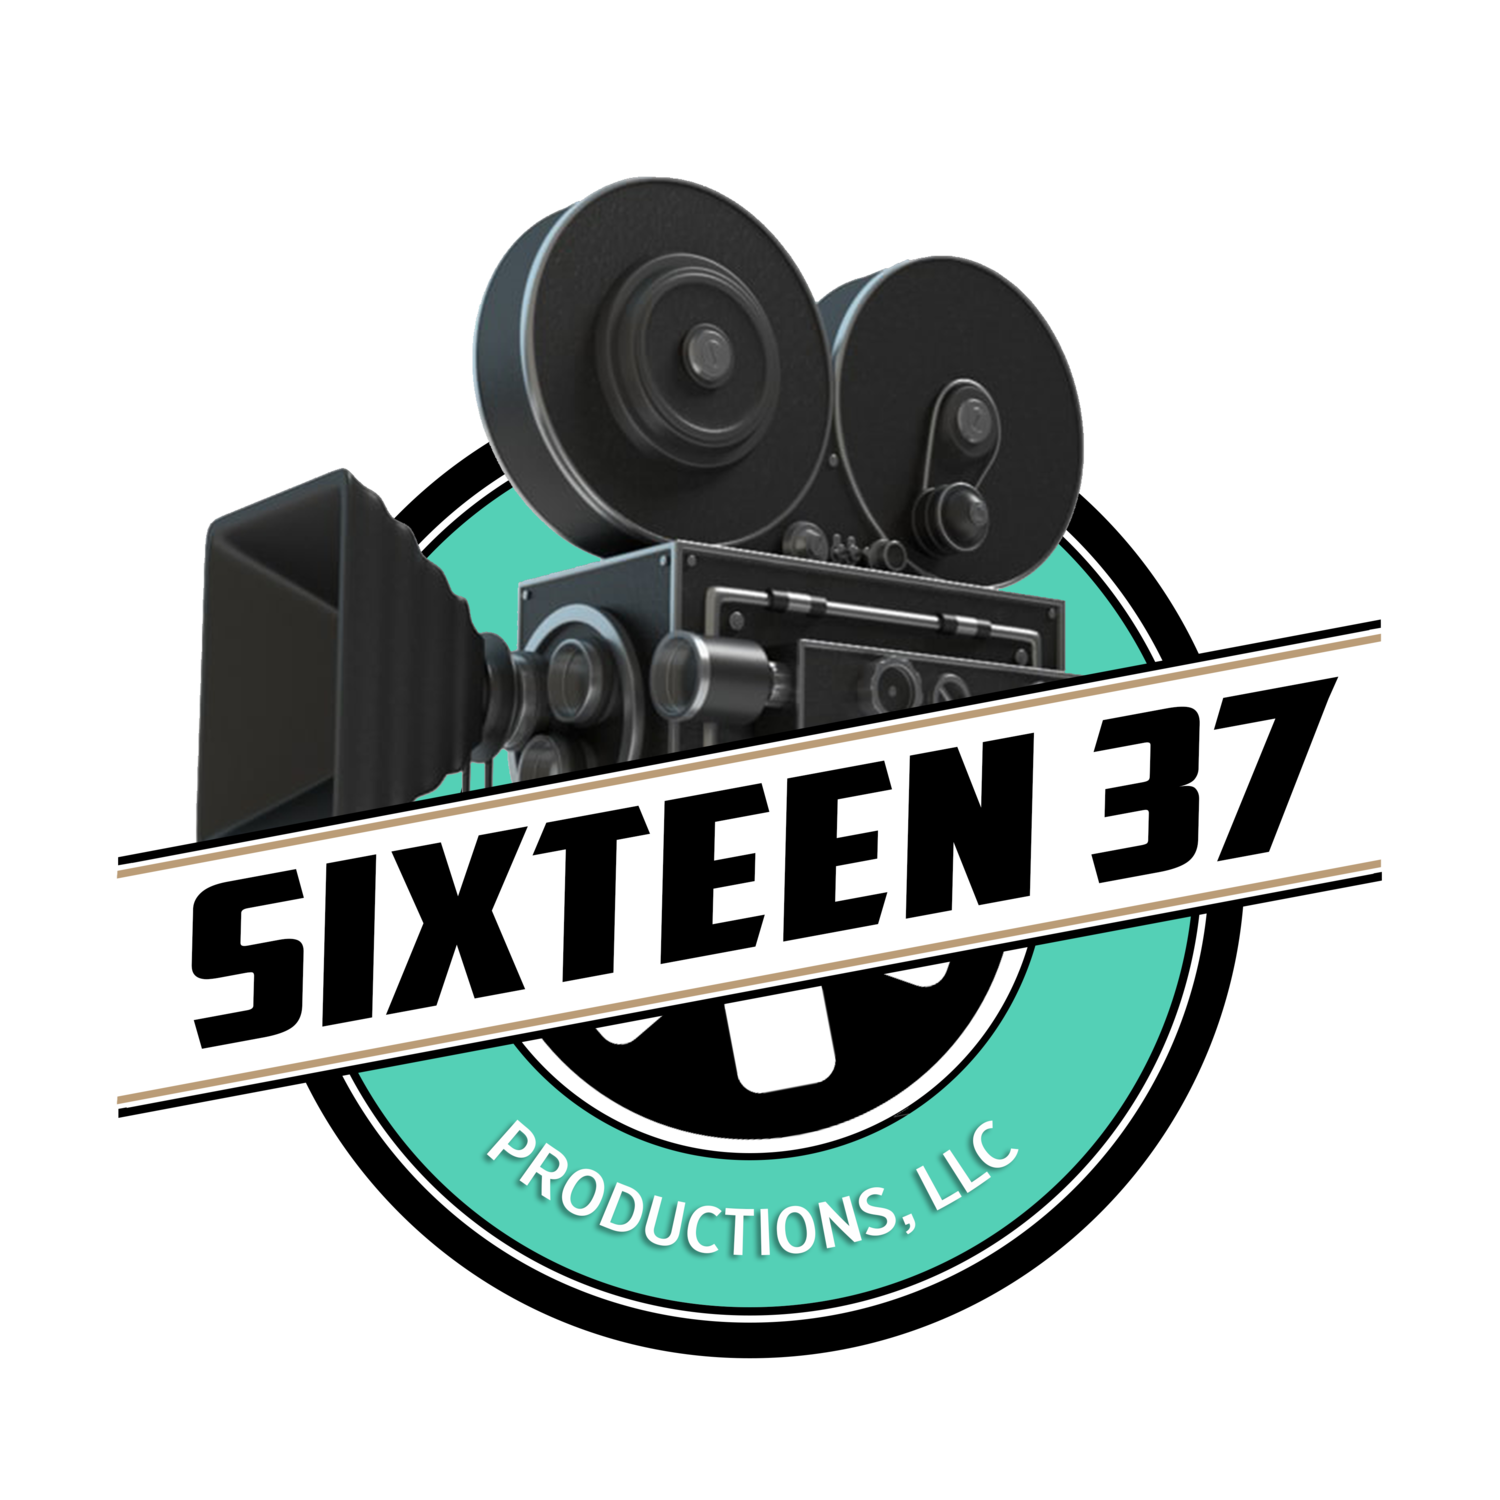 Sixteen 37 Productions, LLC